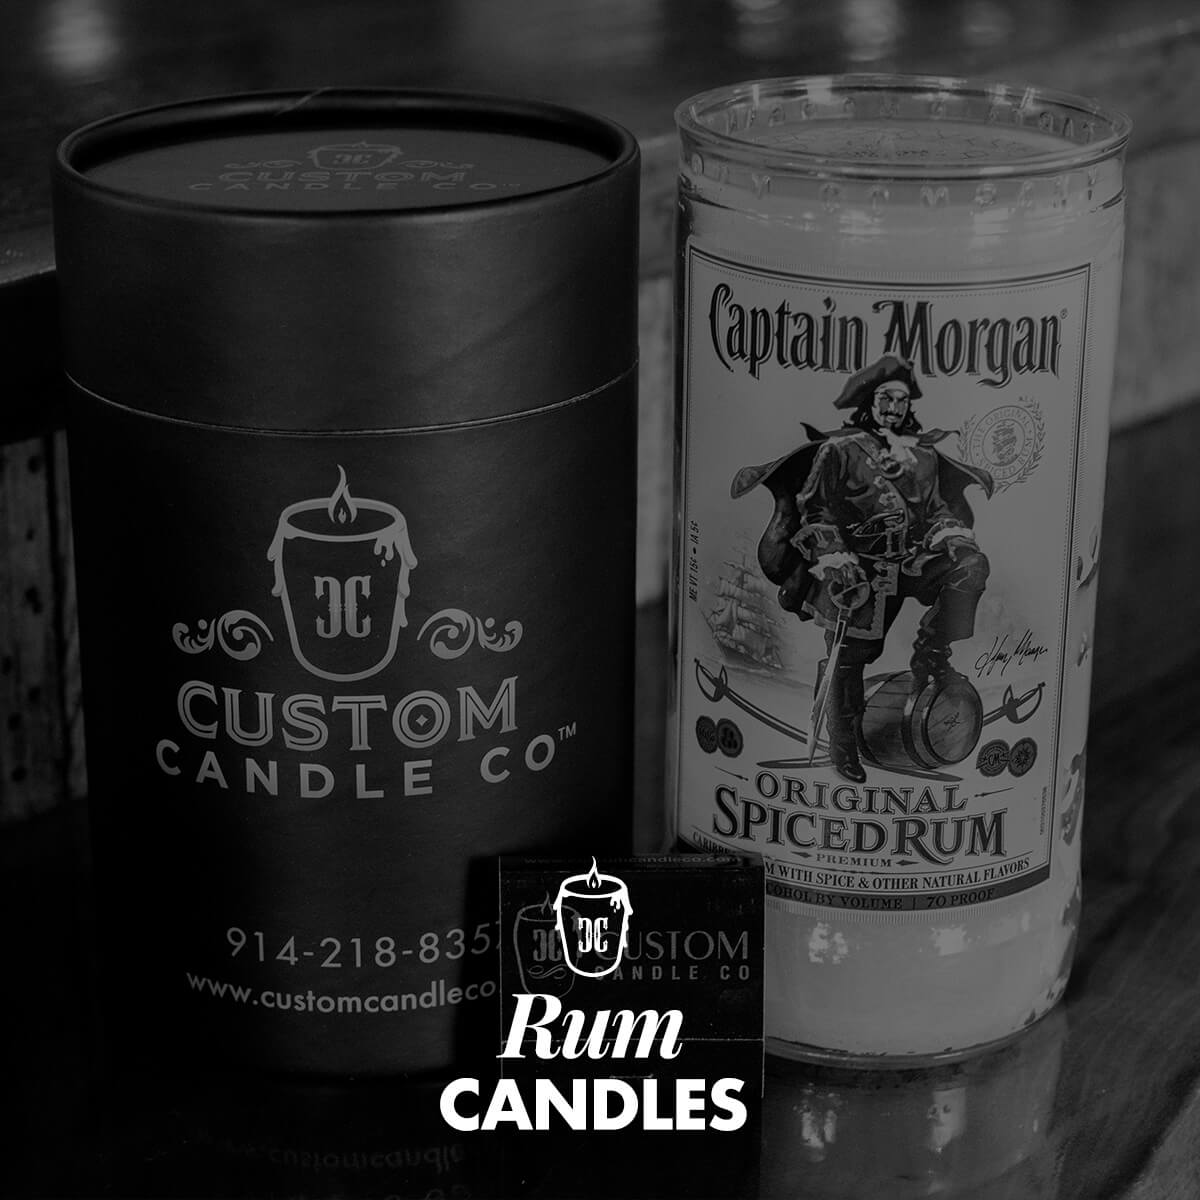 rum-candles-customcandleco-1